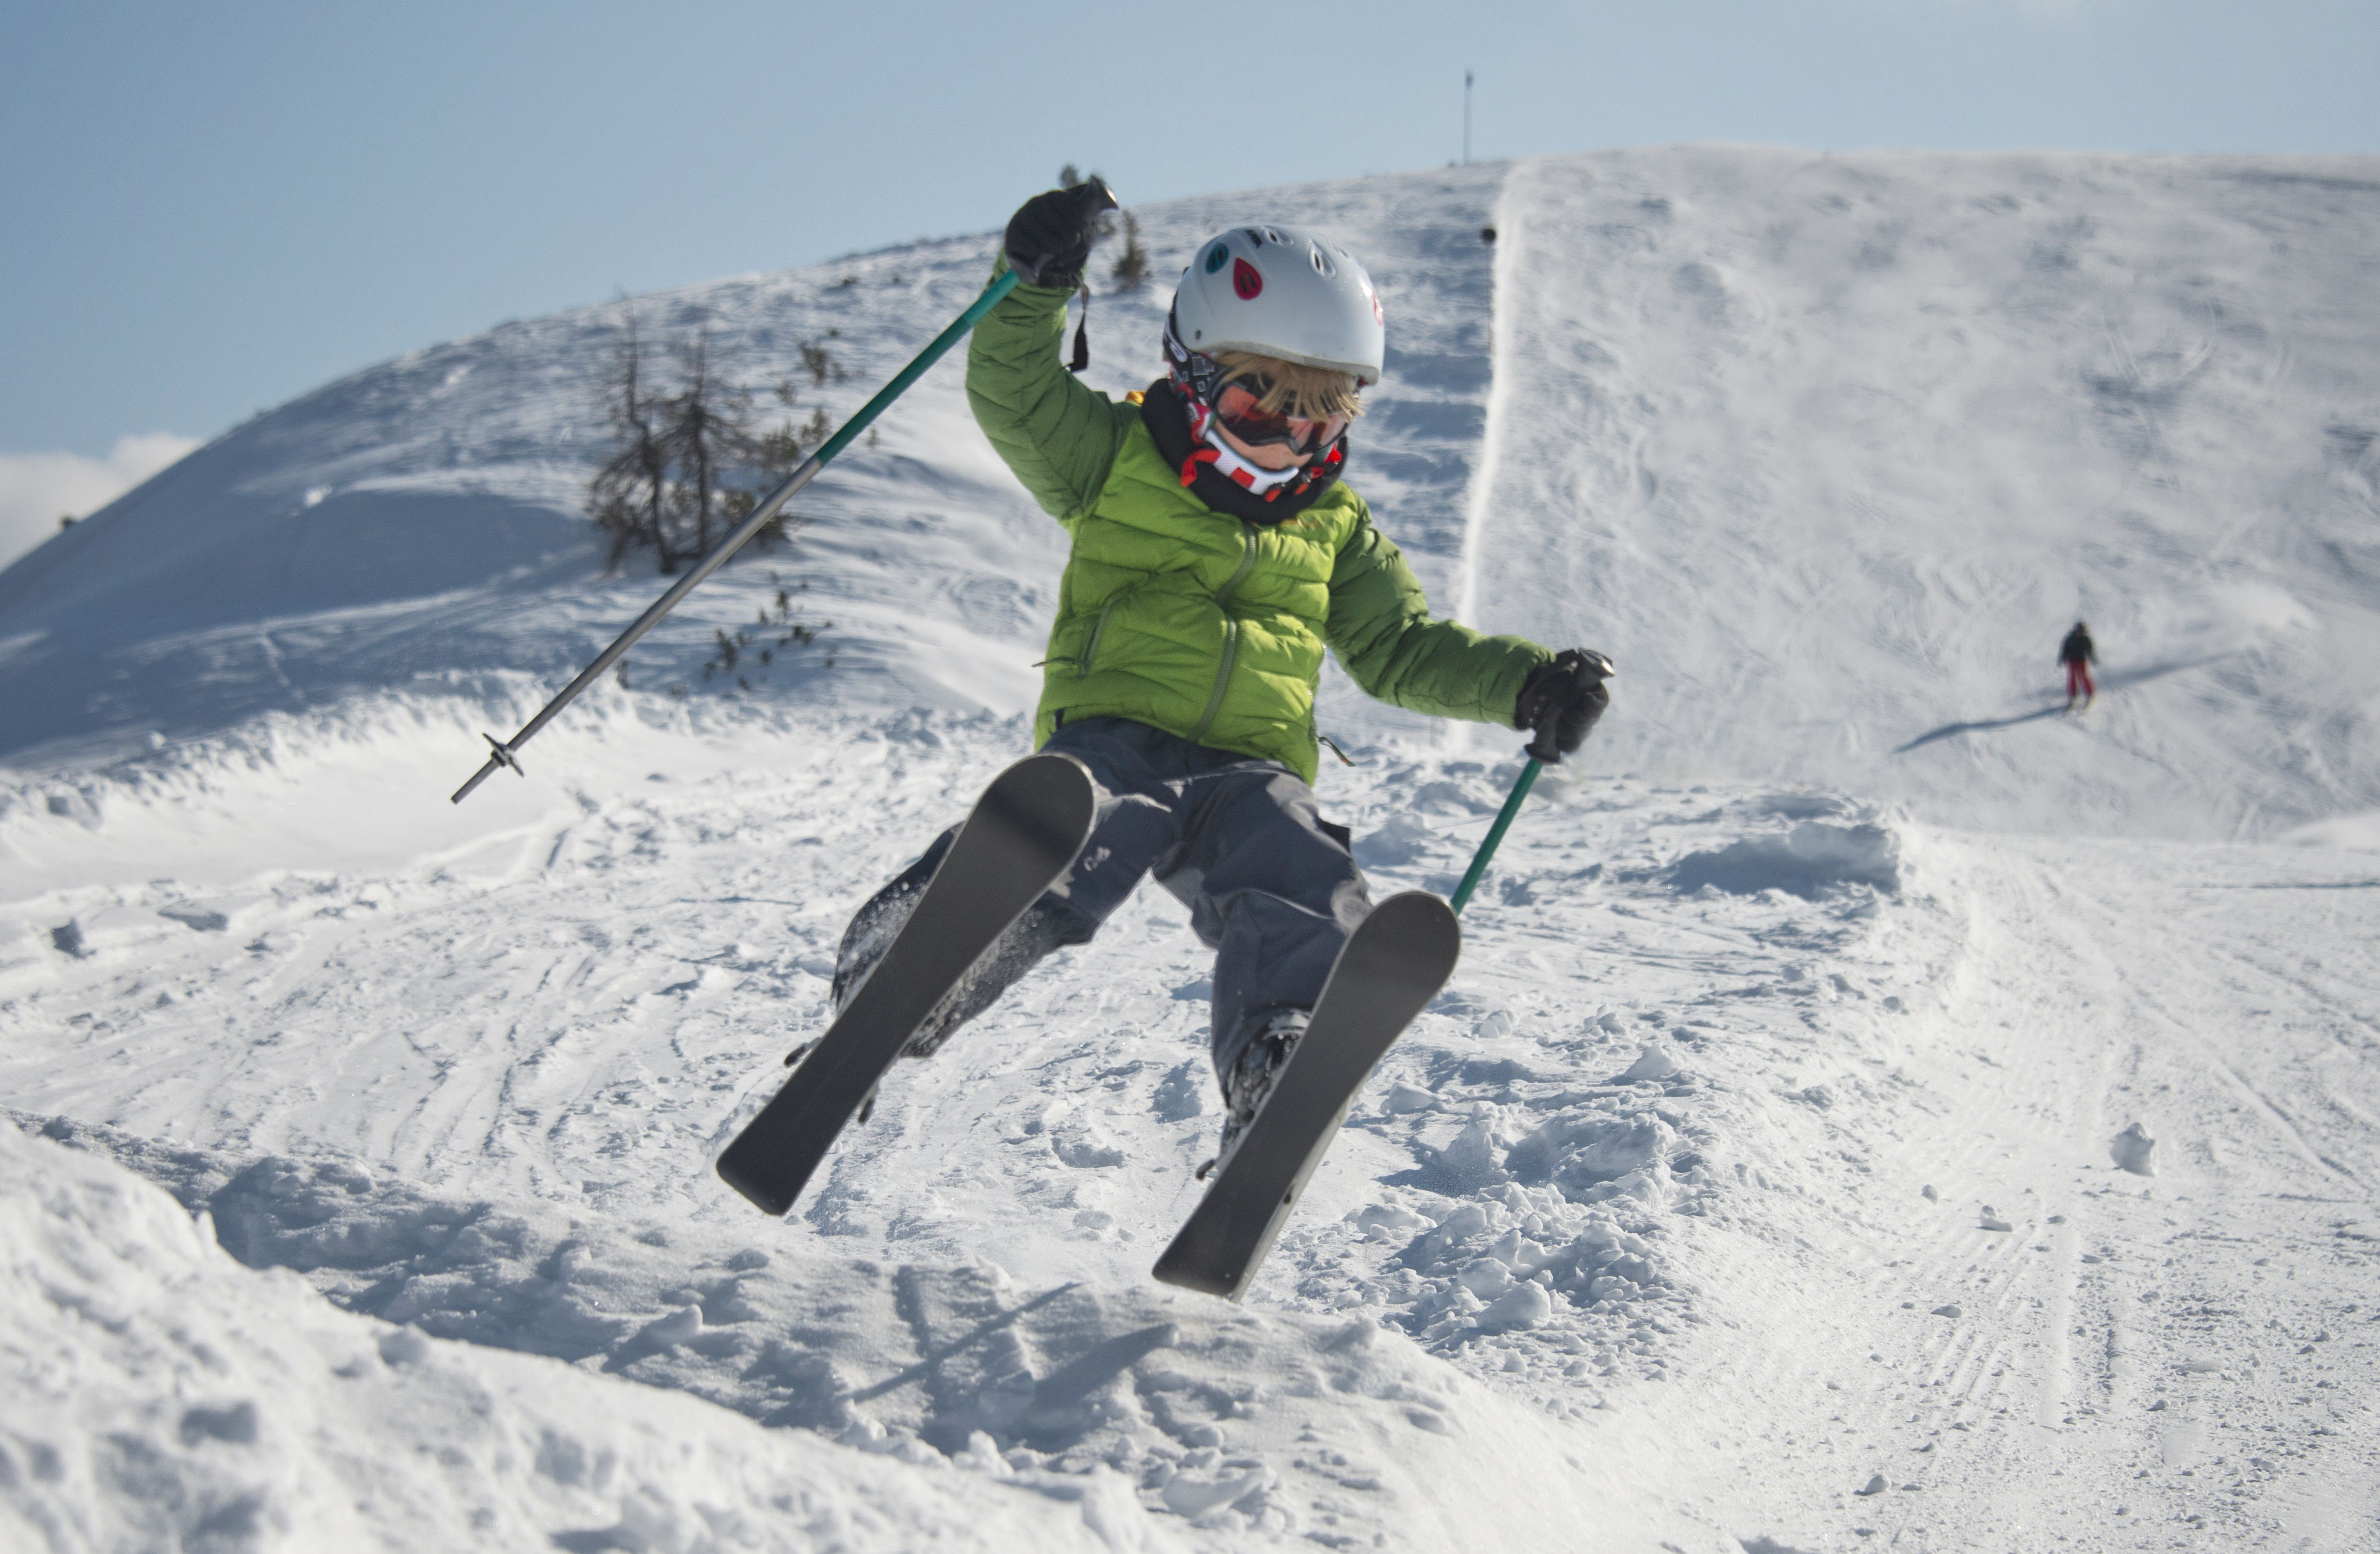 How to Snowboard - ThoughtCo